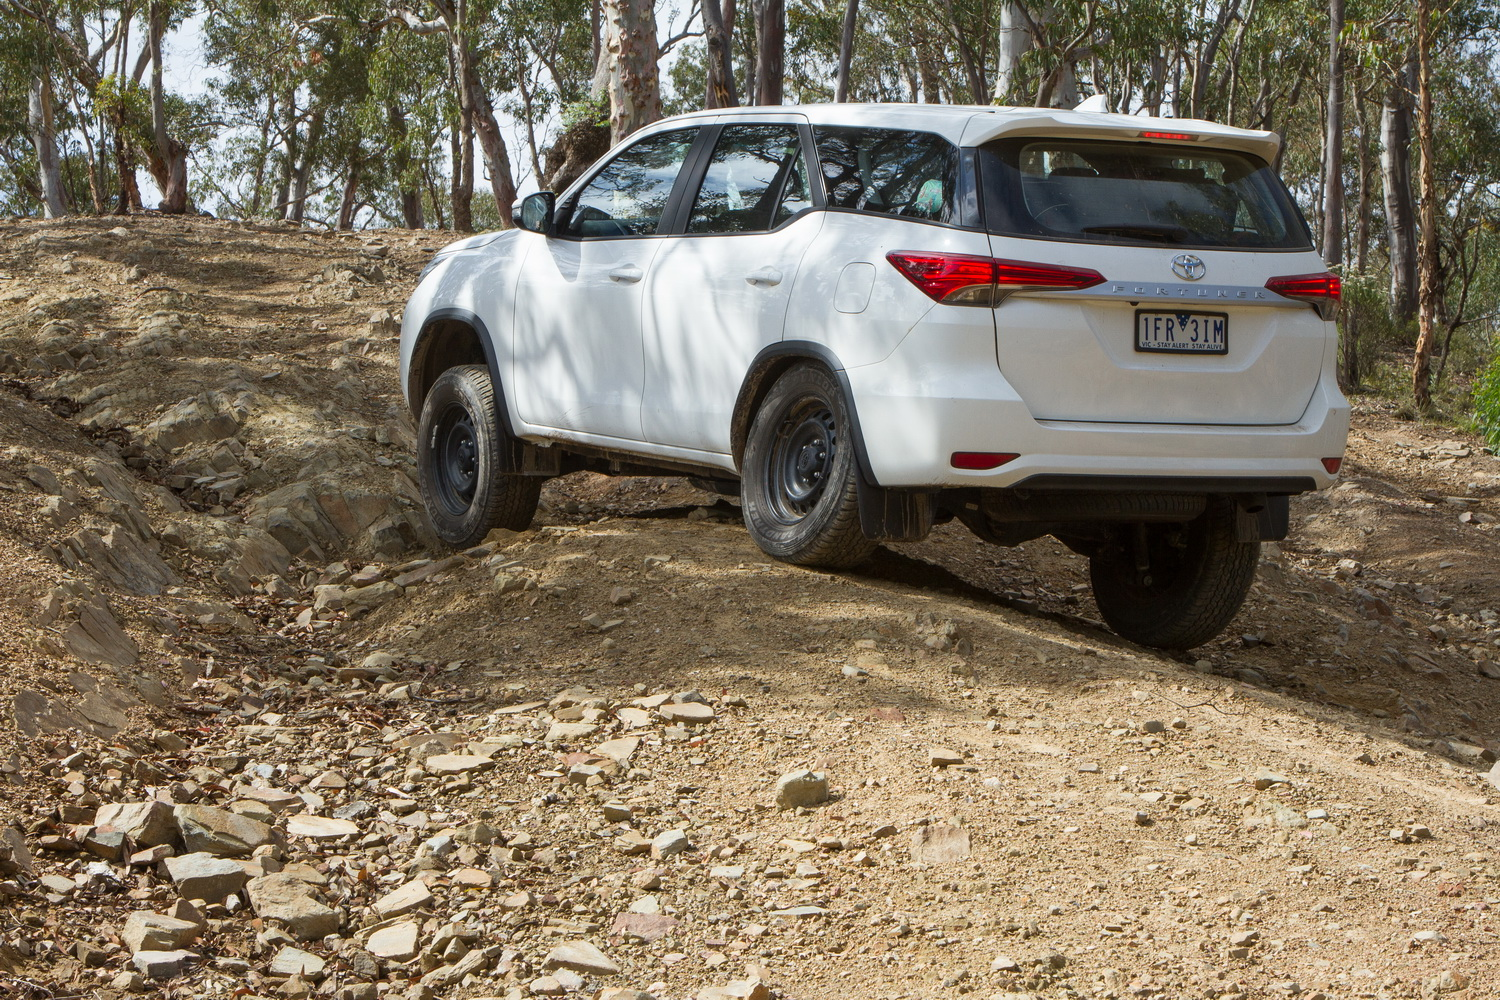 Toyota Fortuner and Toyota HiLux technical analysis – 4WD systems explained